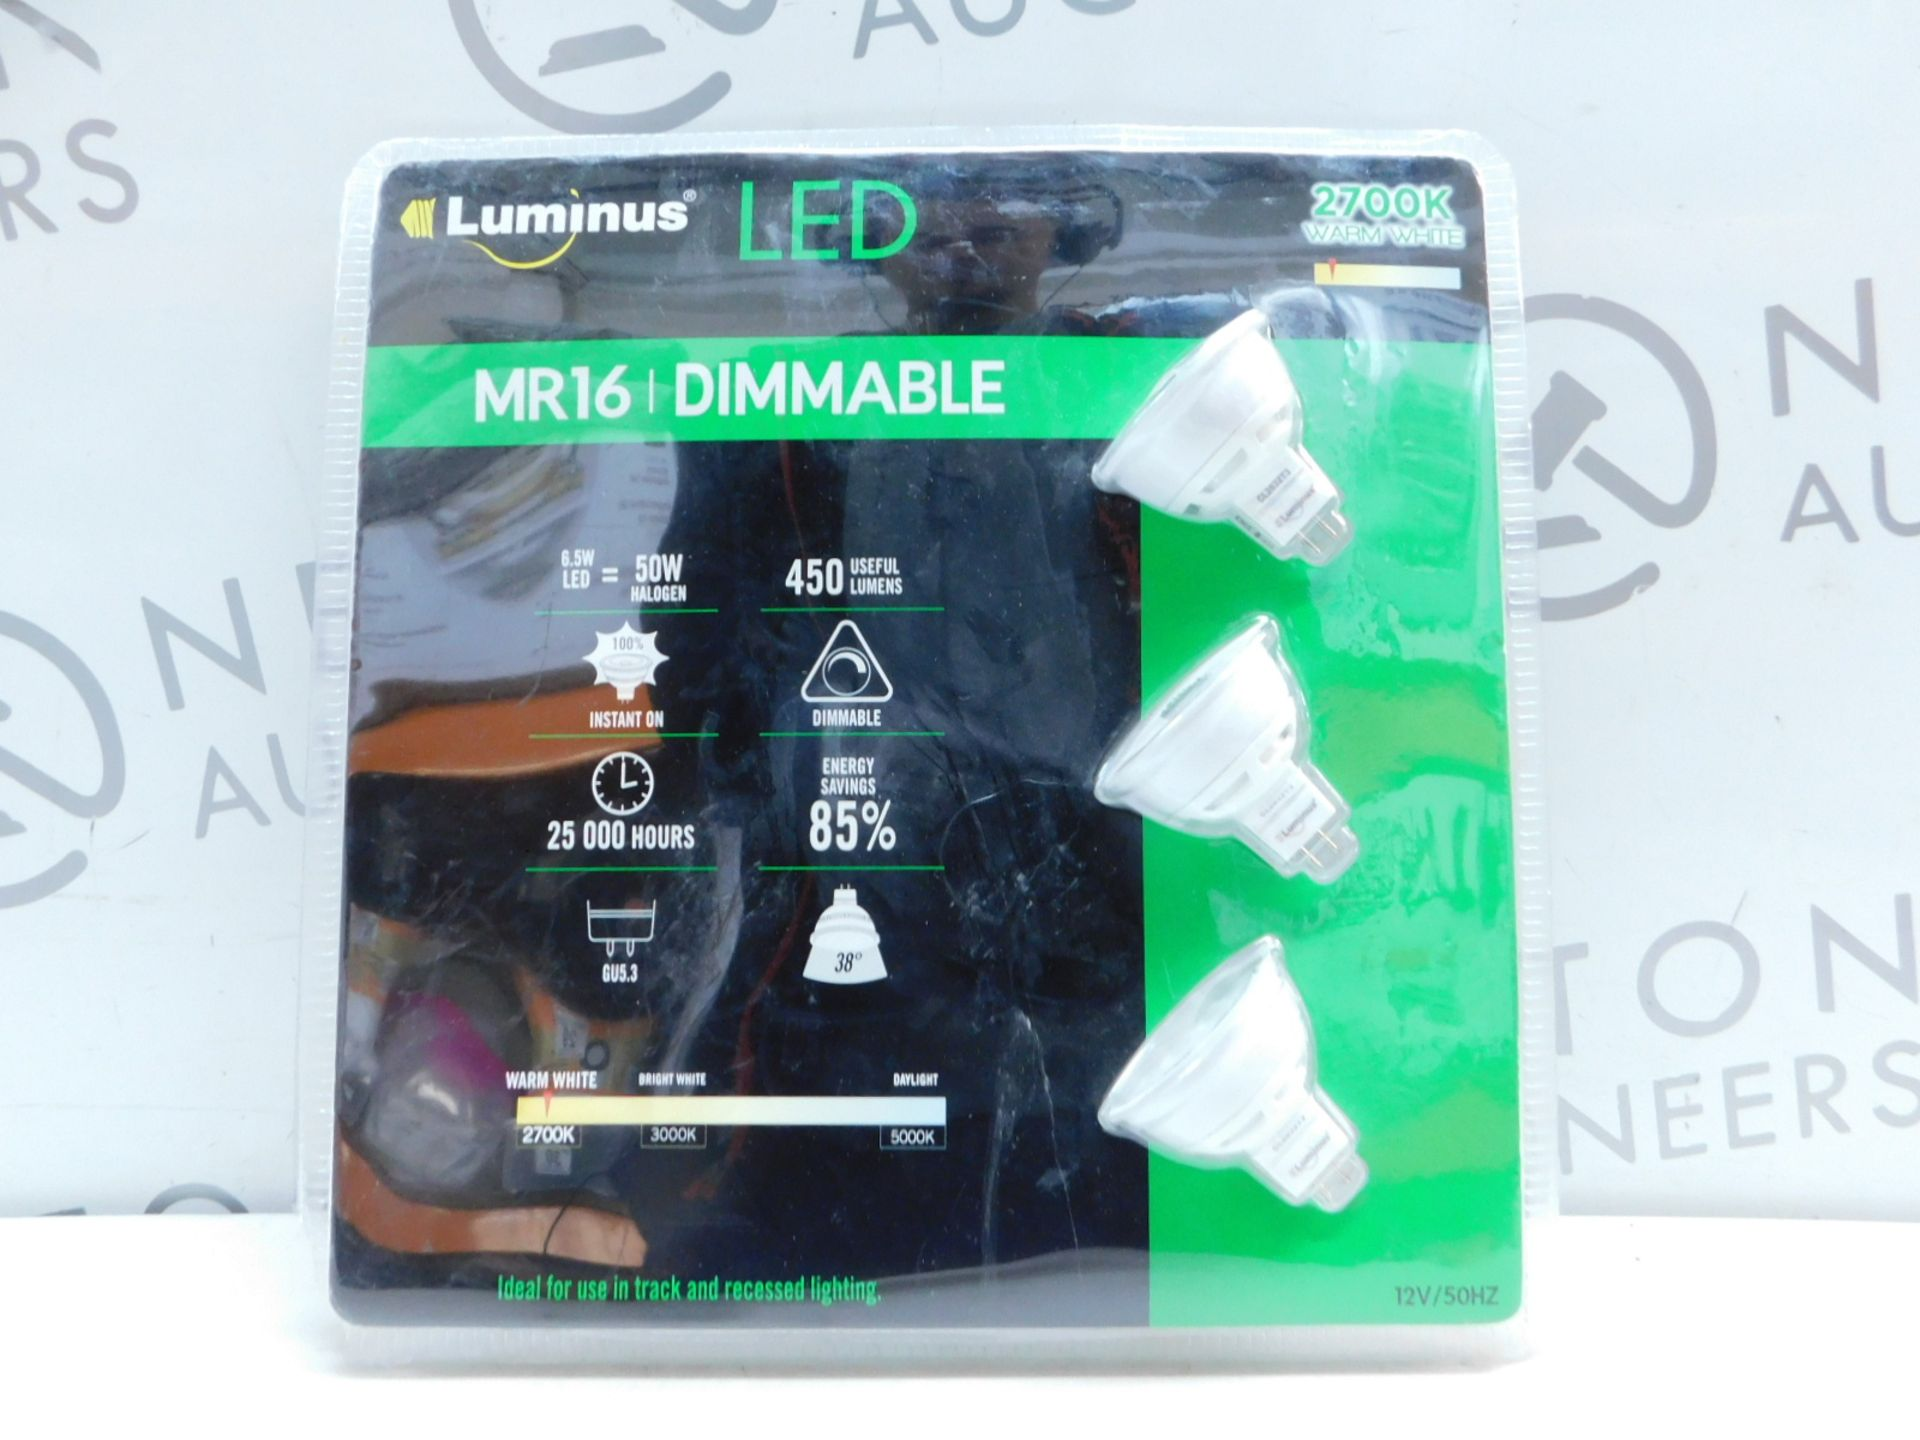 Lot 35 - 1 PACK OF 3 FEIT ELECTRIC MR16 LED DIMMABLE 50W REPLACEMENT BULBS RRP £19.99